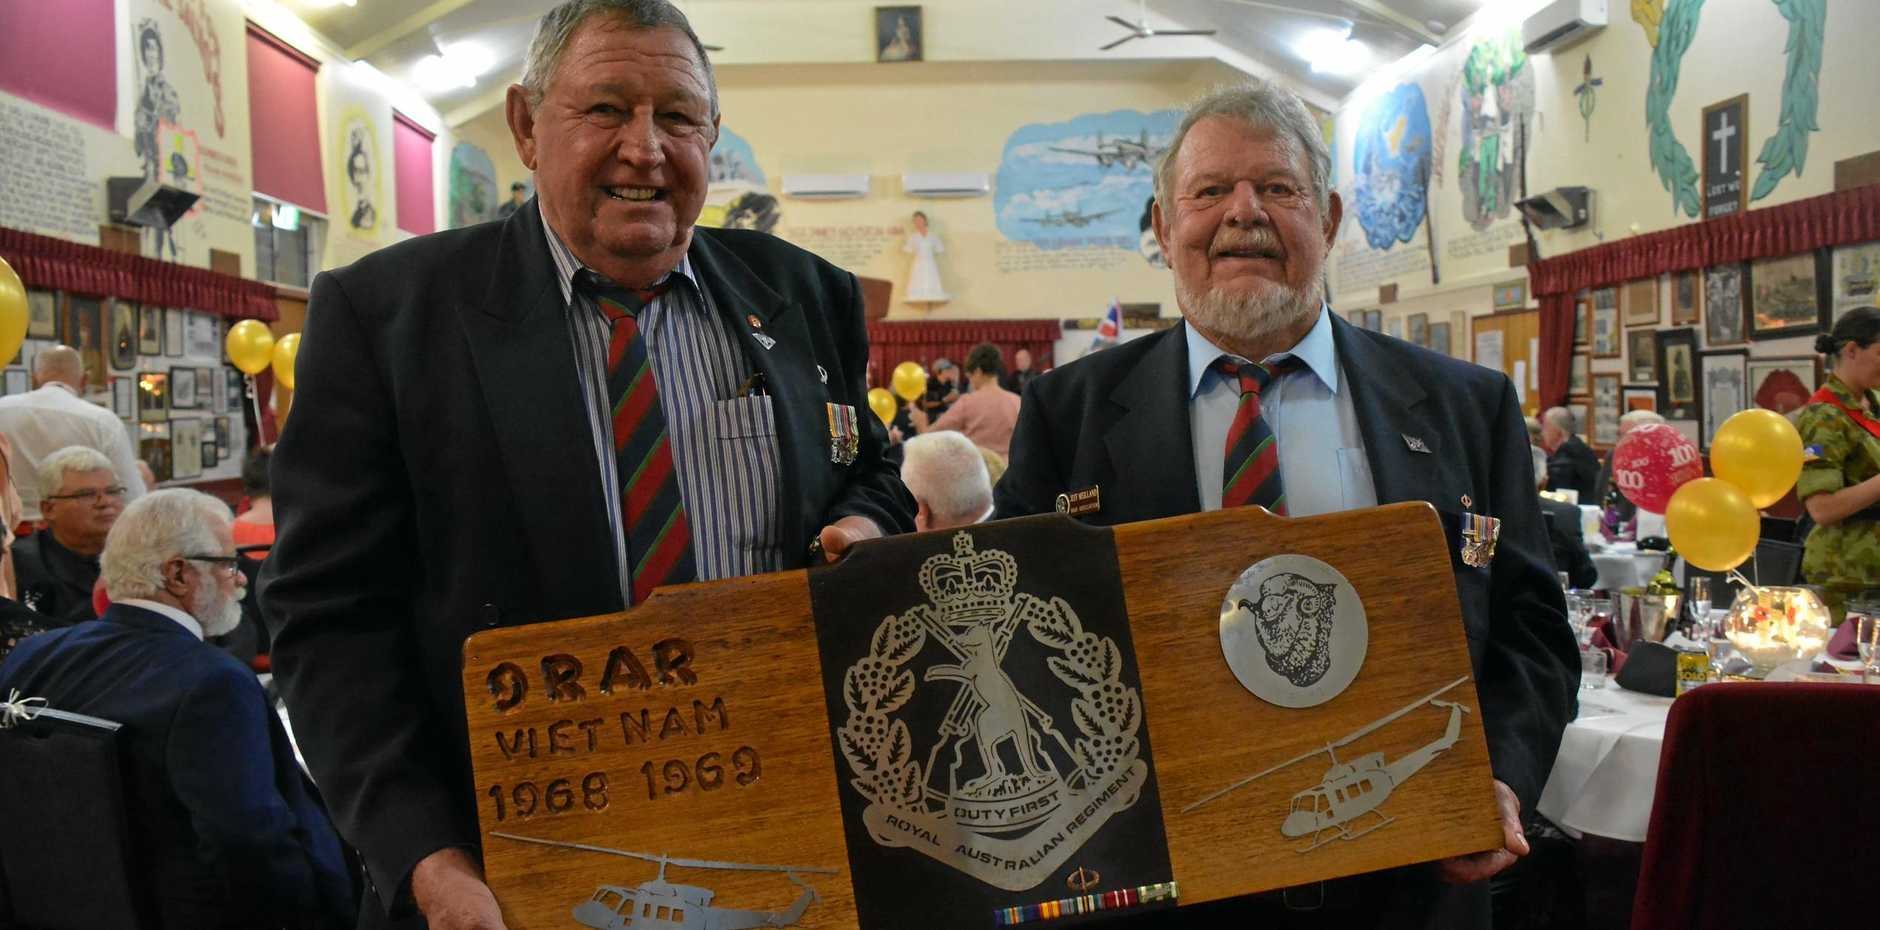 VIETNAM VETERANS: Pte Lawrie Smillie and Pte Jeff (Tub) Meilland donated a plaque to the Nanango RSL during the Armistice Day ball on November 10.